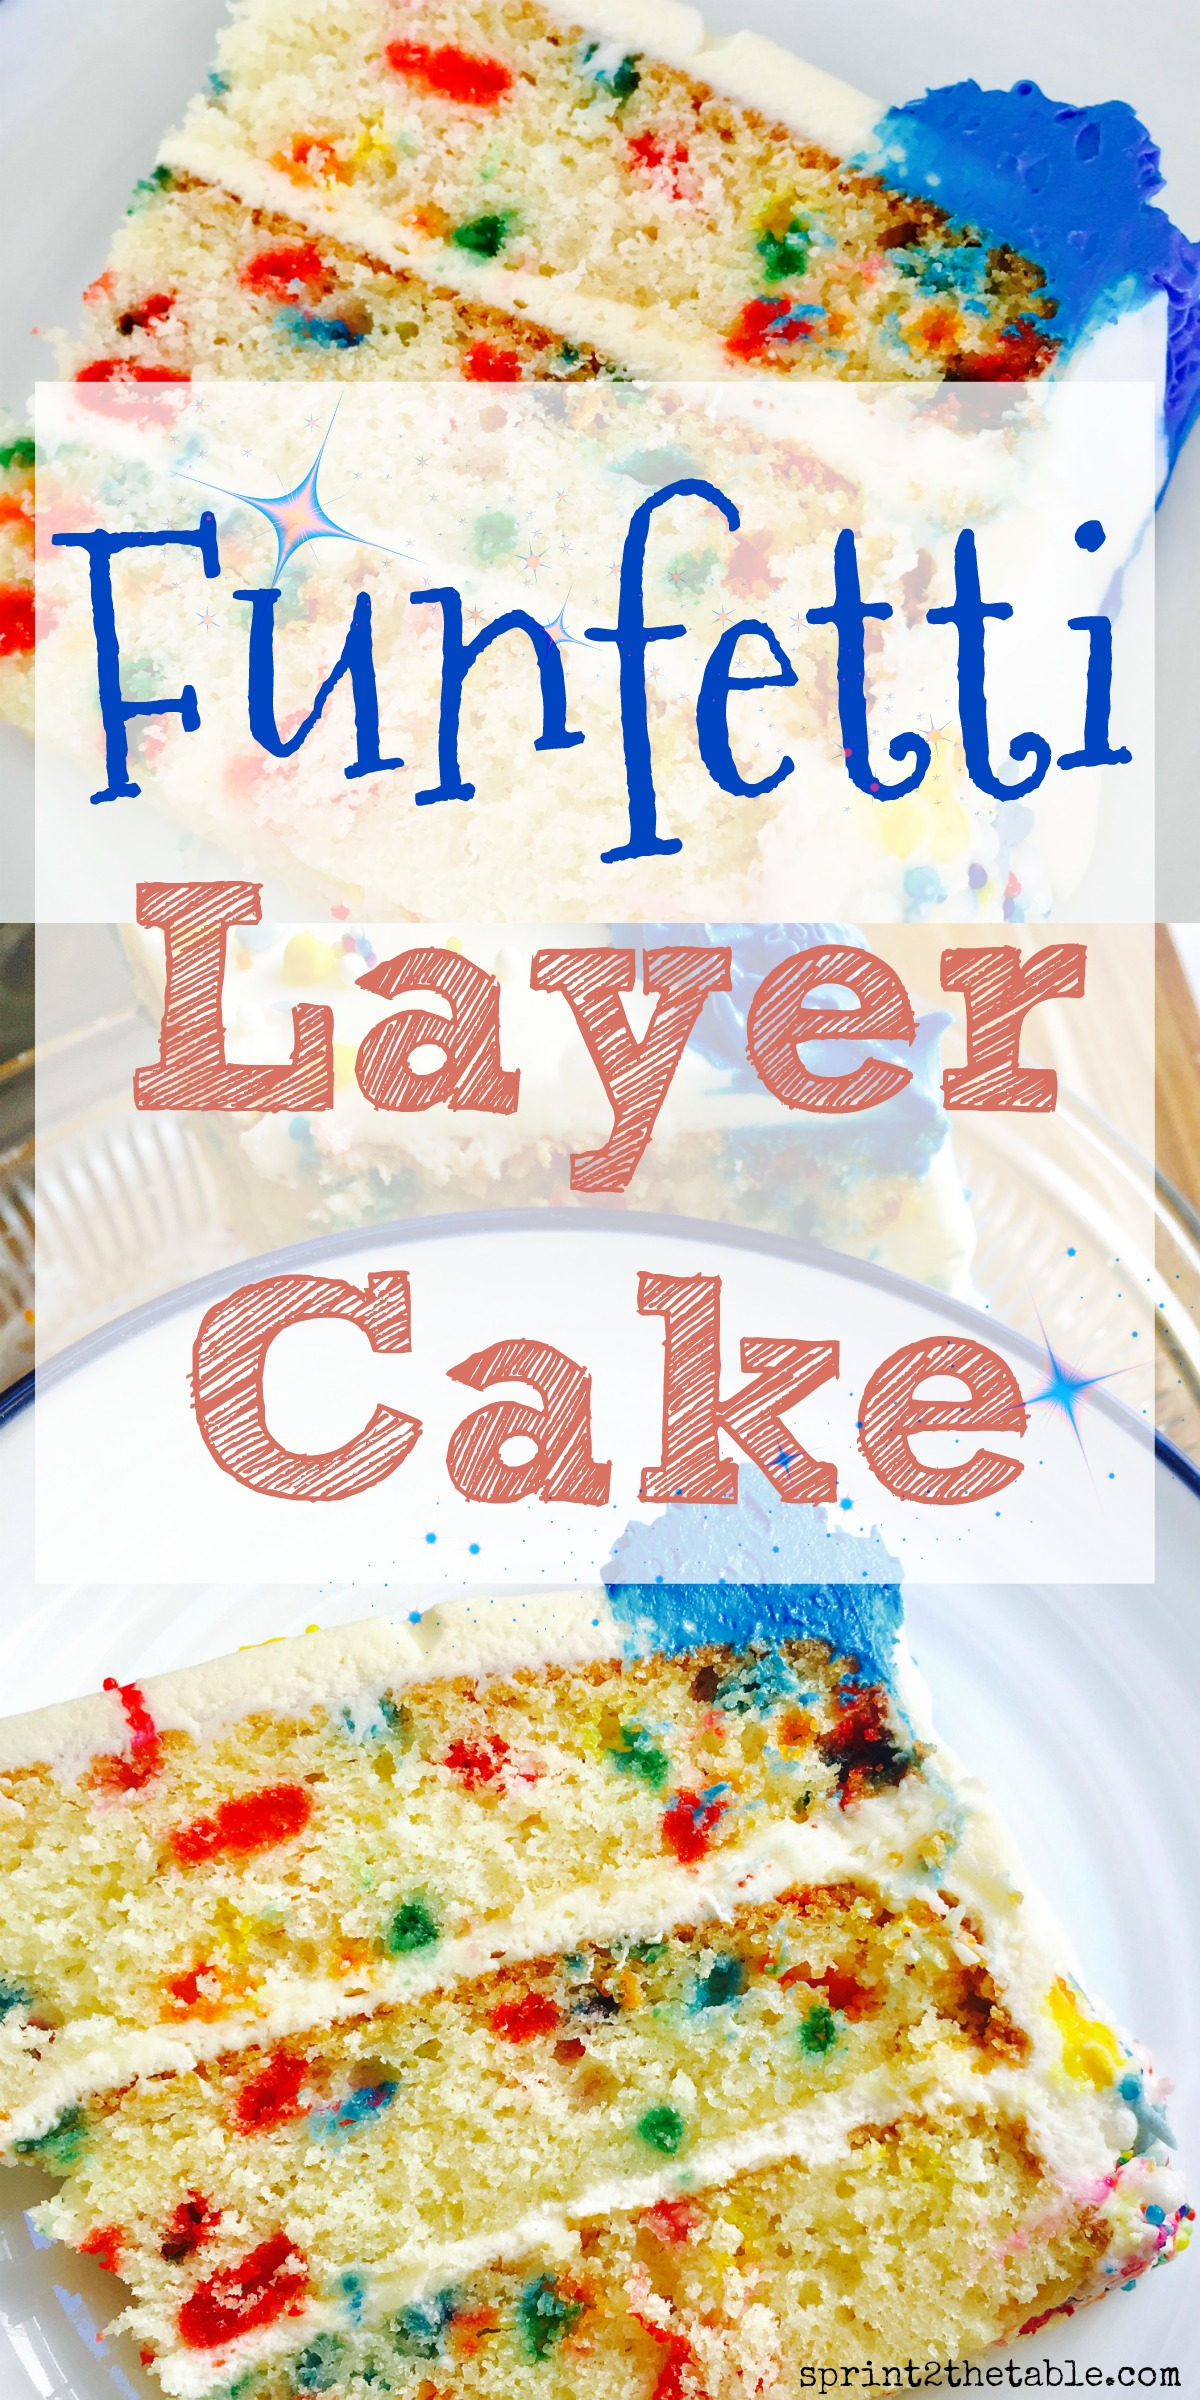 This Funfetti Layer Cake is easy to make, super moist, and full of sprinkles. Its delicious flavor iscompletely from scratch, and I promise it isn't hard!